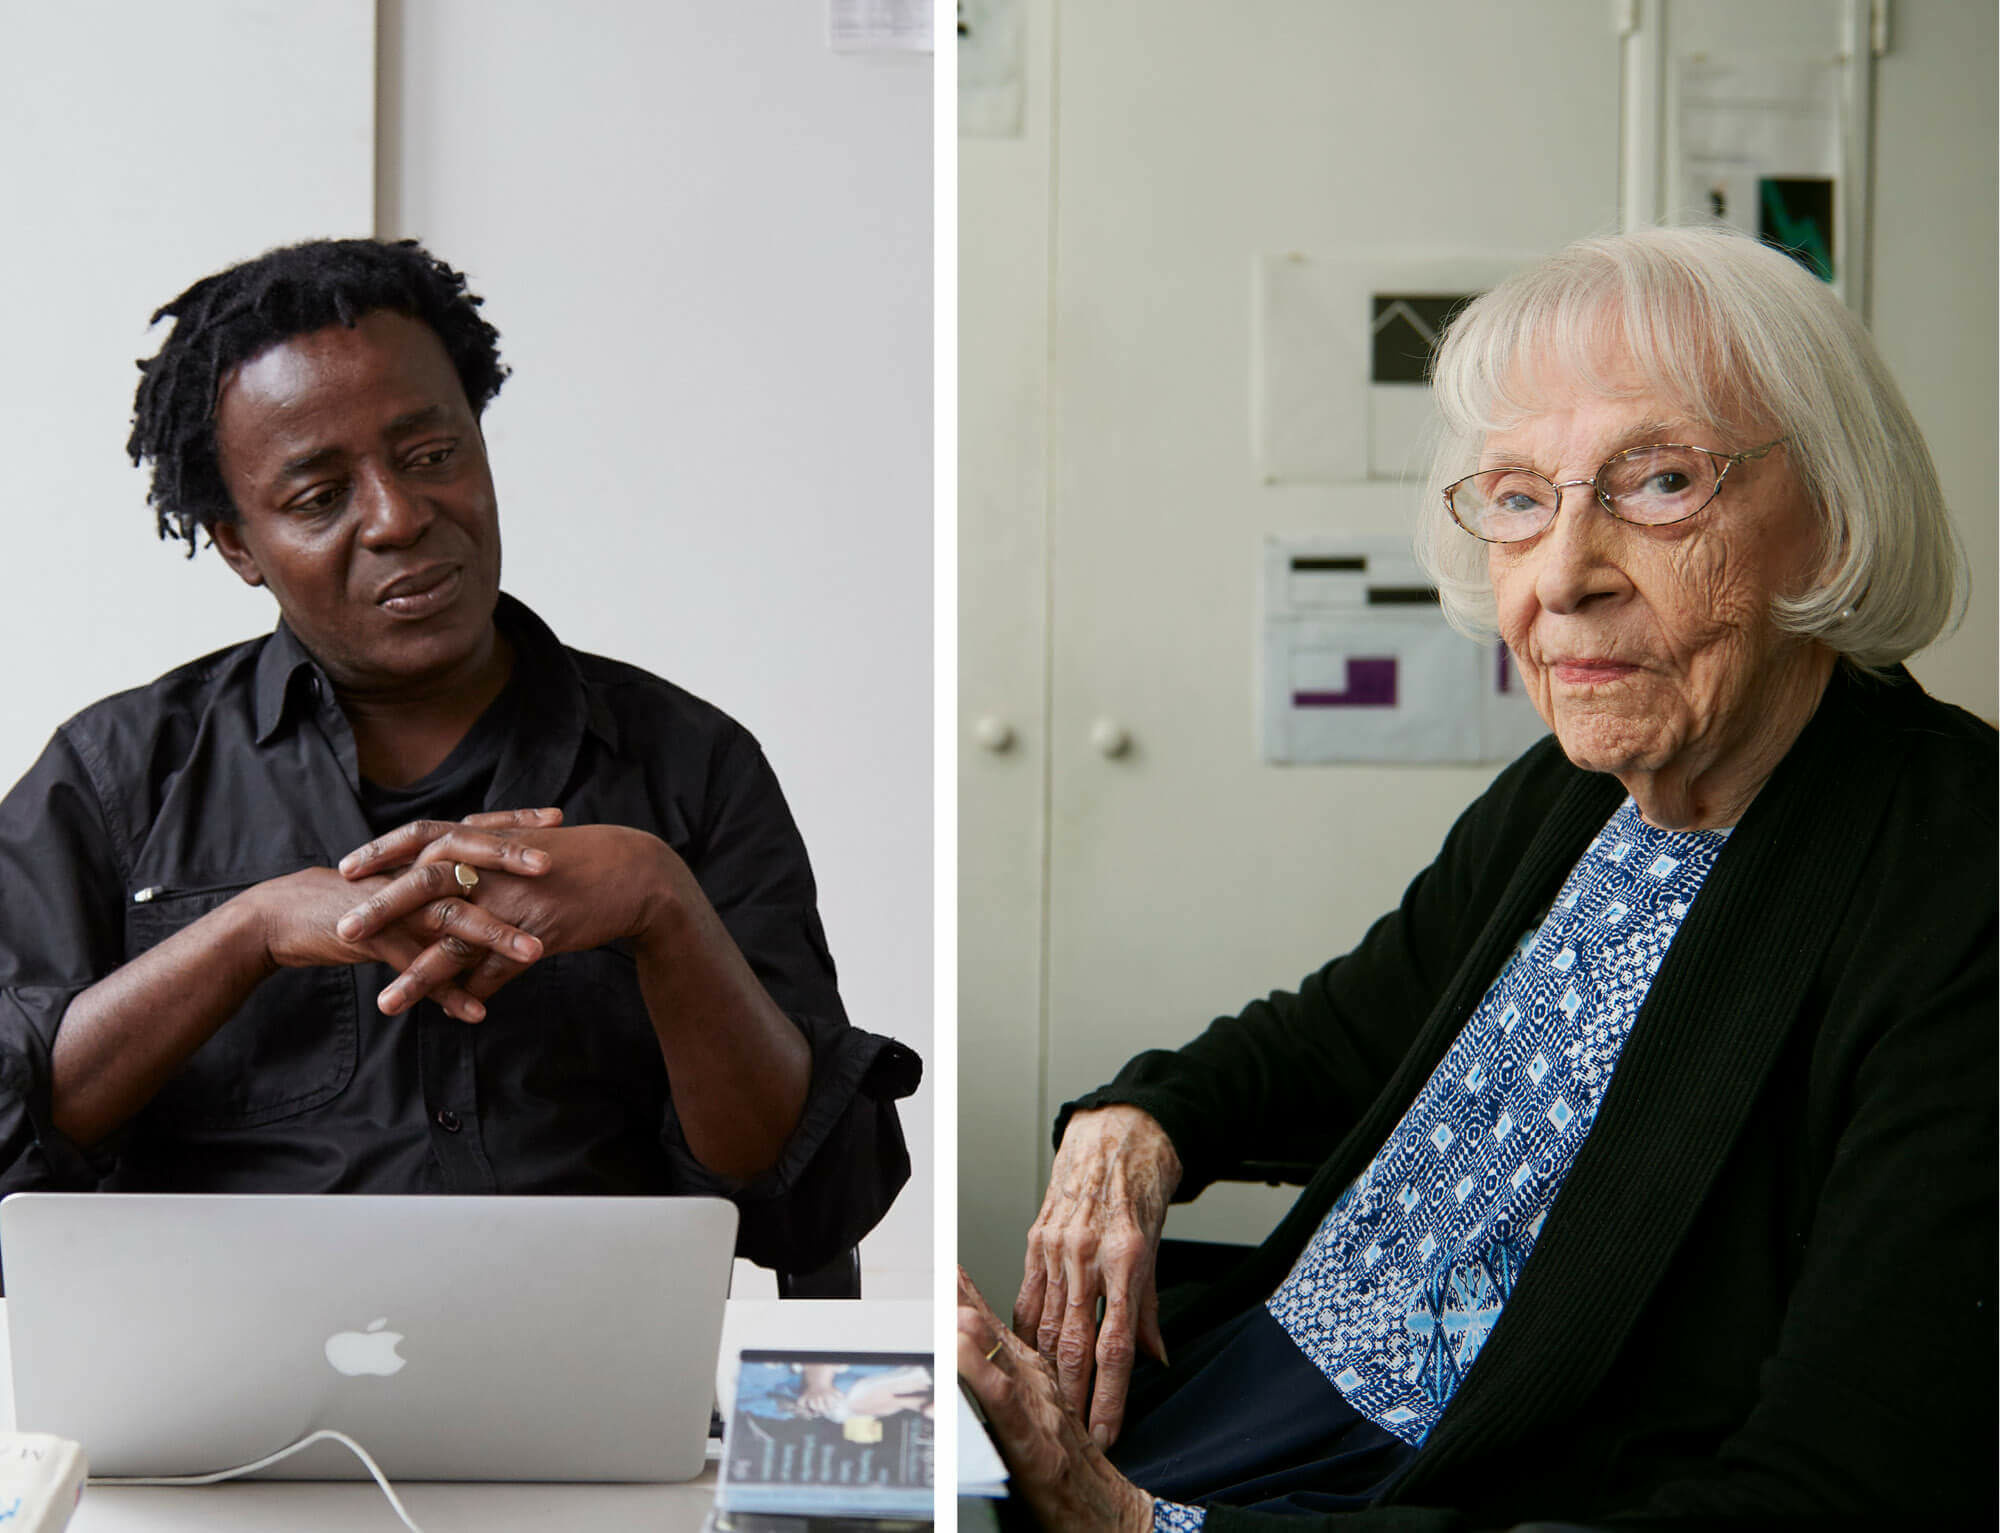 Royal Academy of Arts elects John Akomfrah and Carmen Herrera Royal Academicians